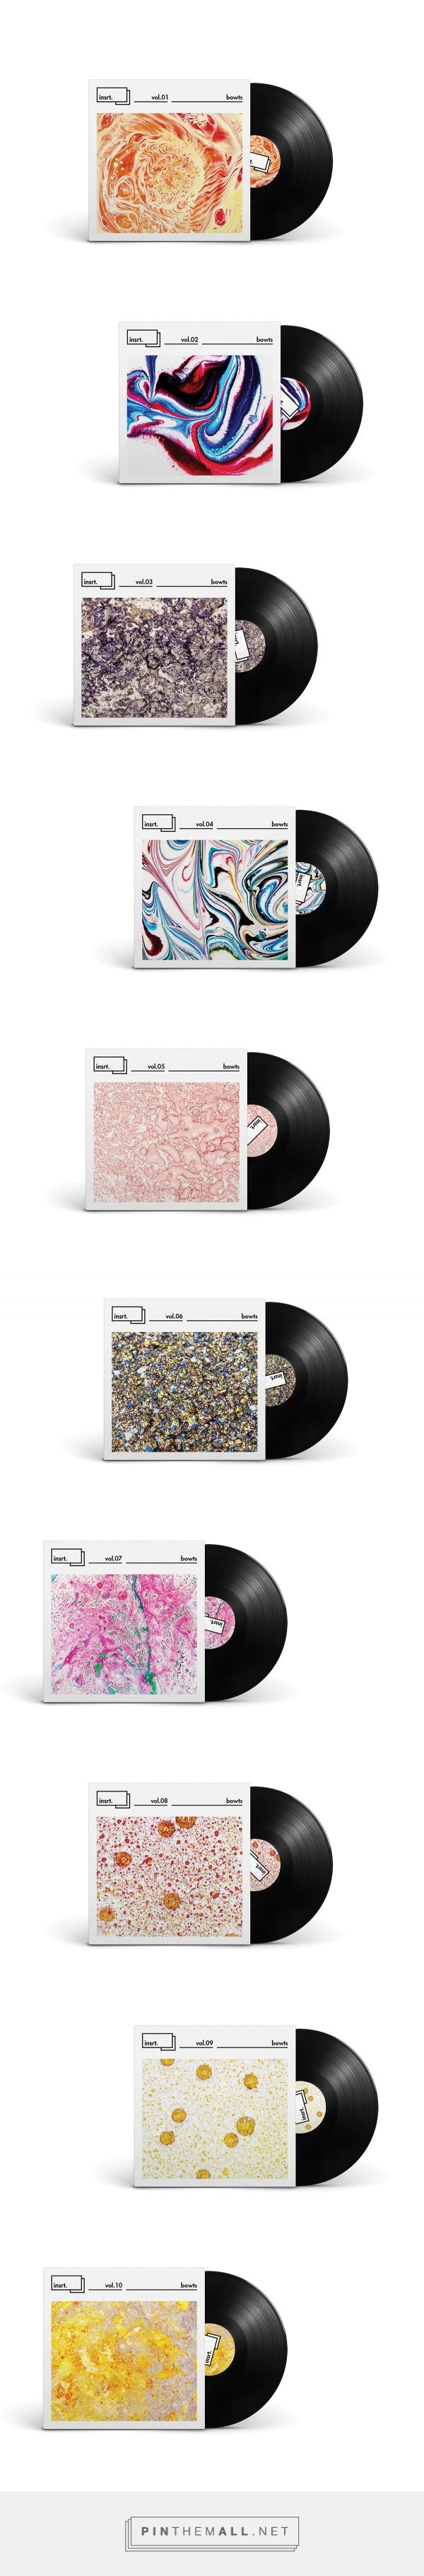 INSRT. on Branding Served curated by Packaging Diva PD. Album cover packaging…